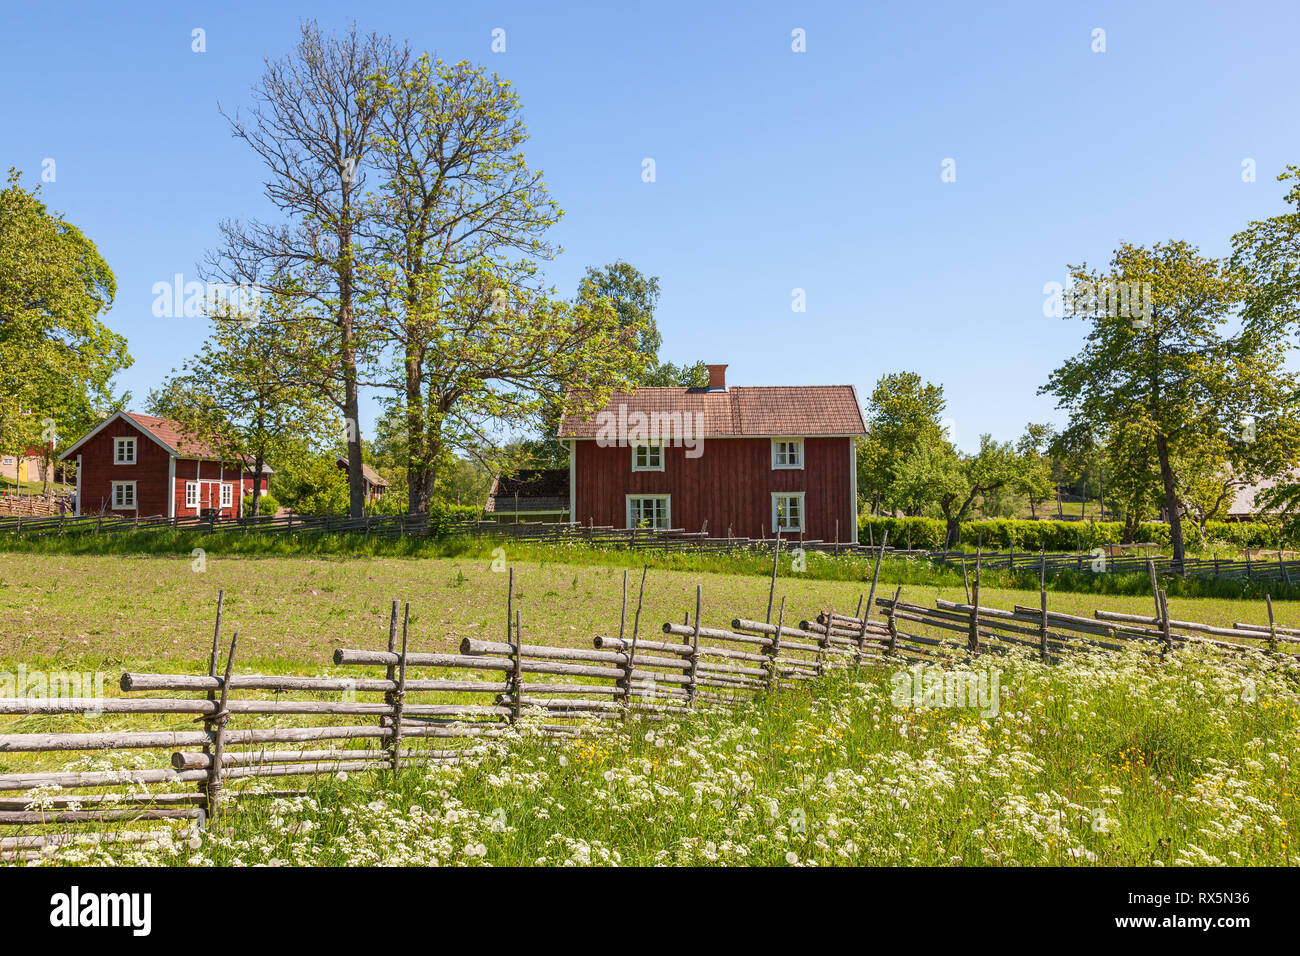 Farm houses in a old rural landscape view - Stock Image